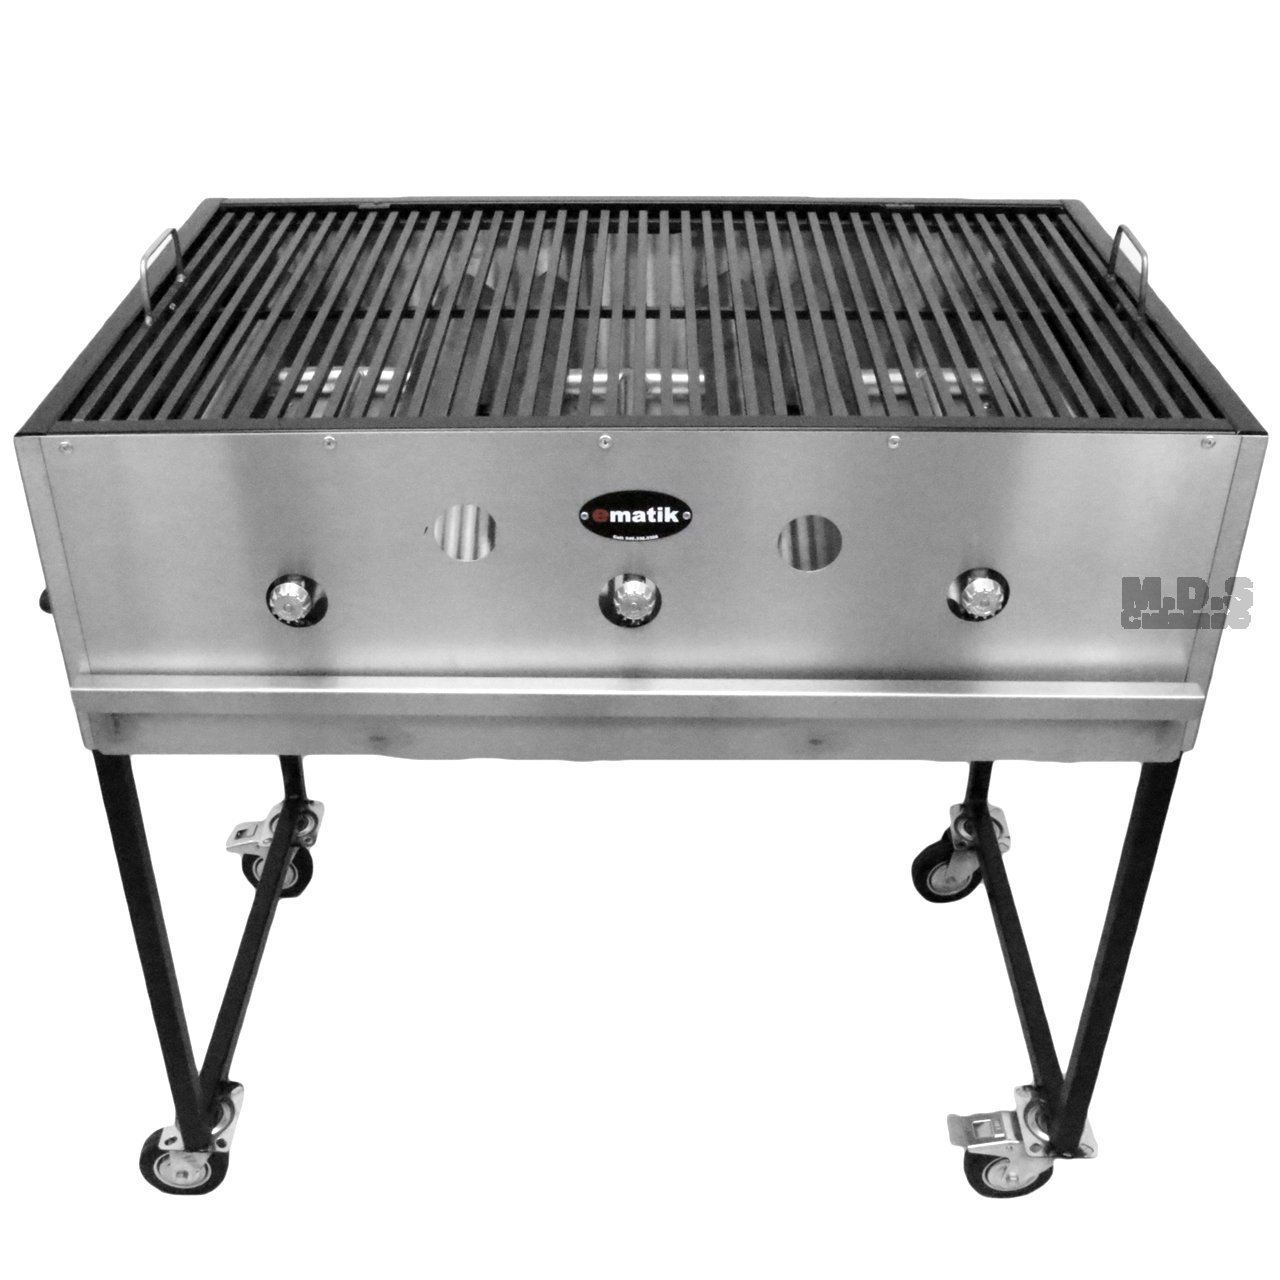 """Ematic Catering Cart 36"""" Grill 100% Pure Heavy Duty Gauge Steel Commercial Stainless Steel Taco Cart"""